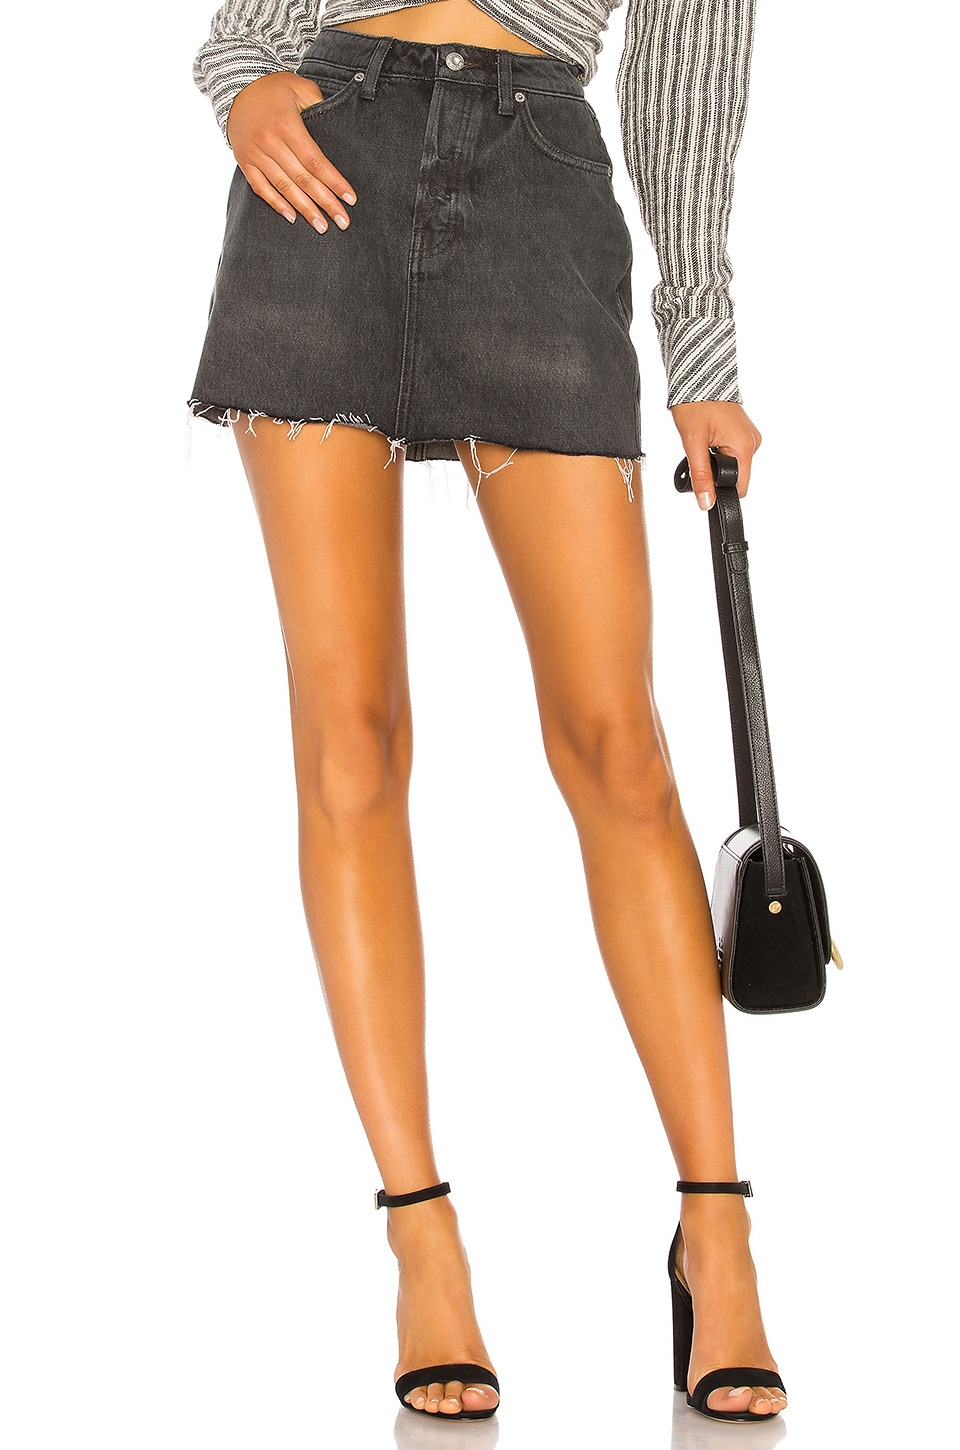 Free People Rugged A-Line Skirt in Black